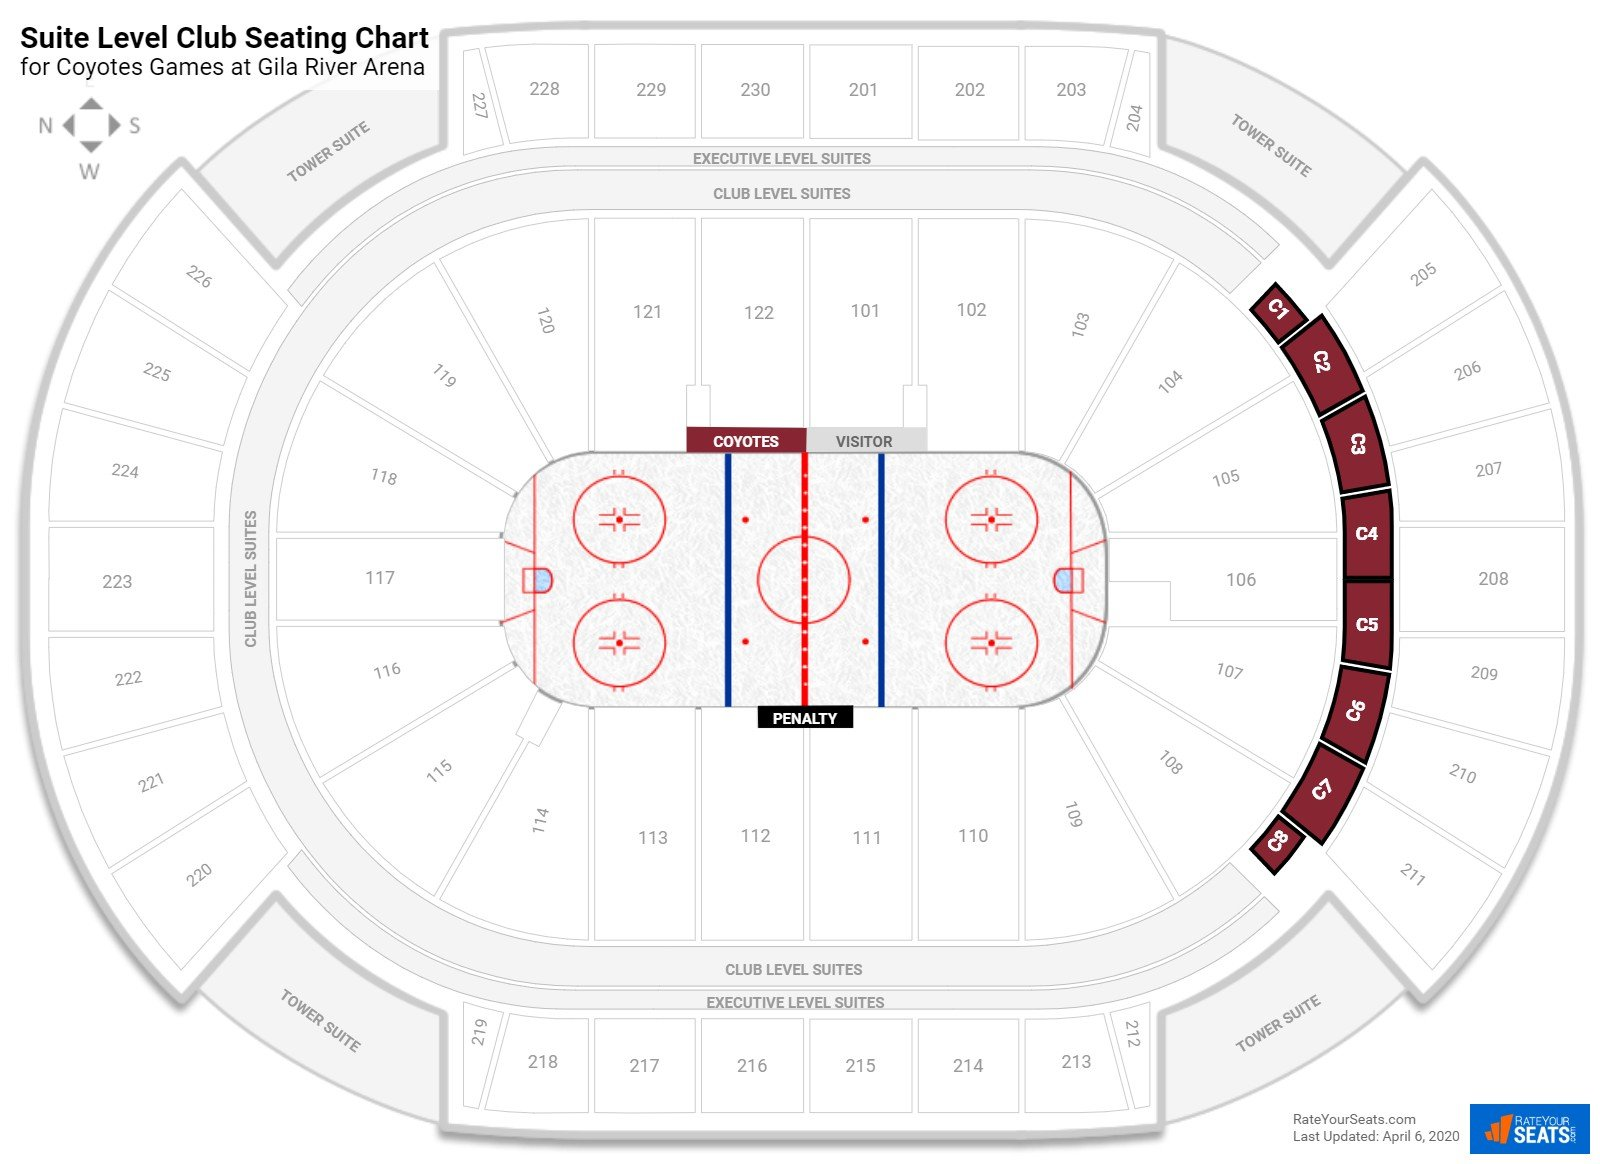 Gila River Arena Club Level seating chart